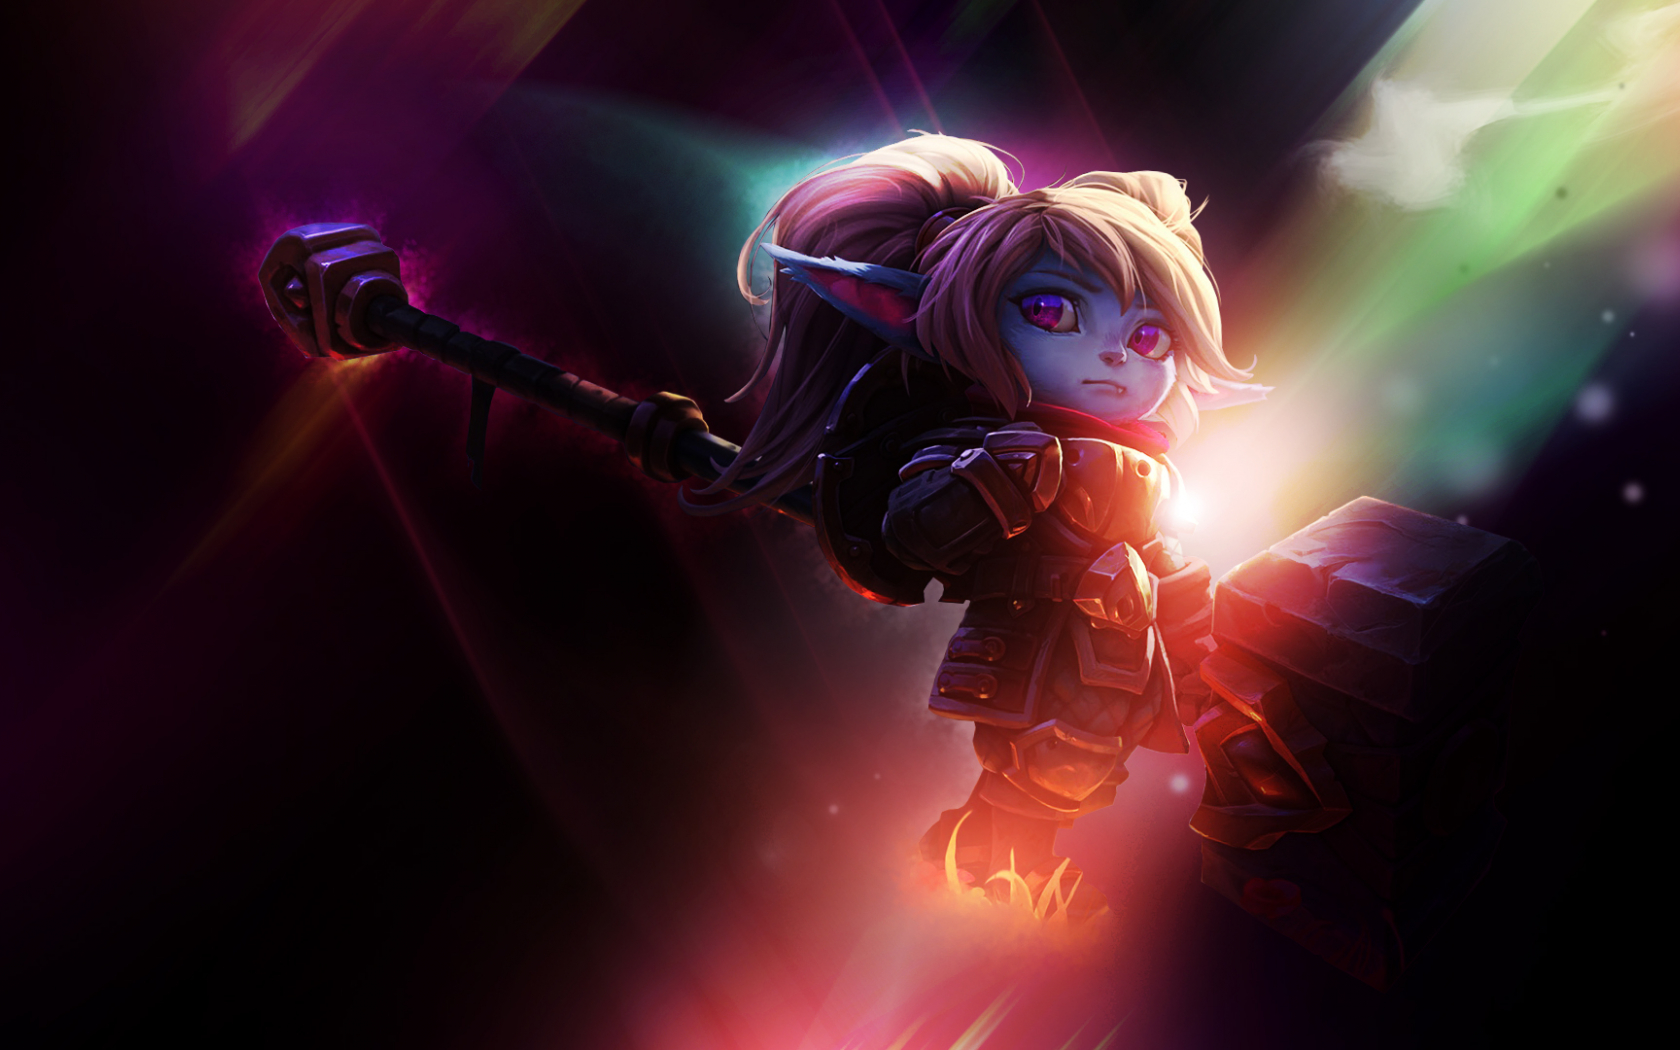 Free Download Poppy League Of Legends Wallpapers 1920x1080 For